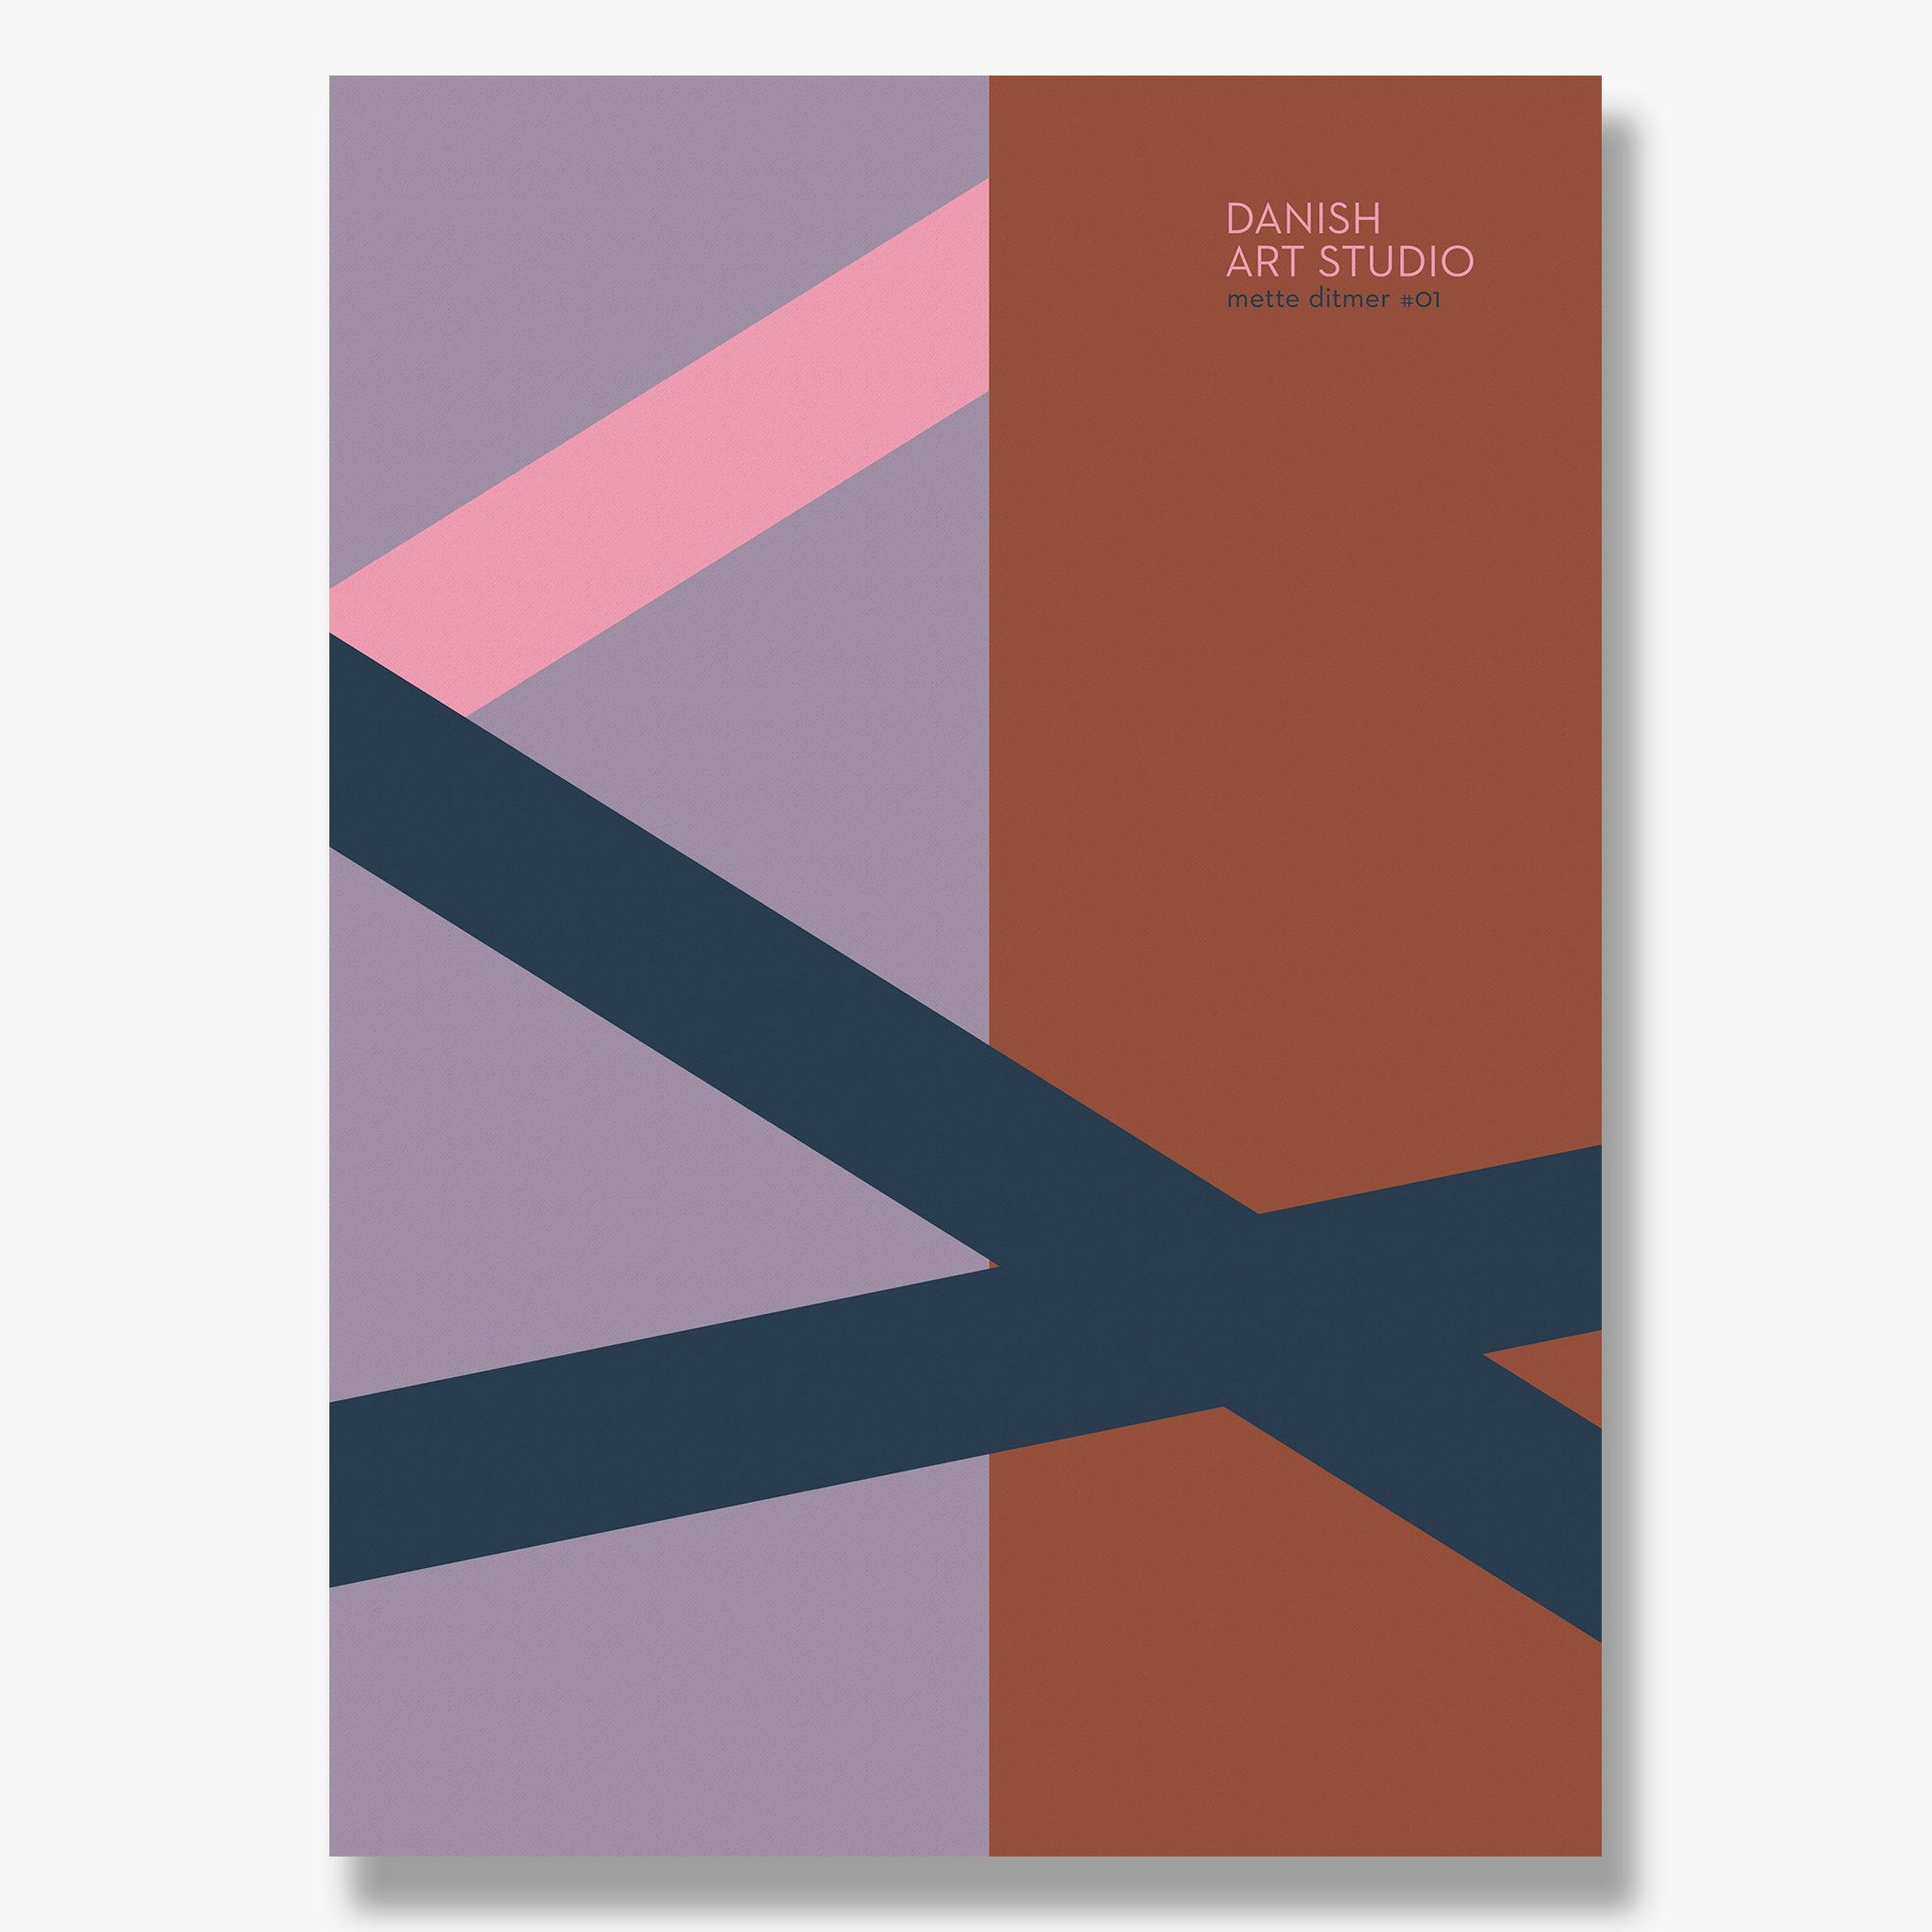 DANISH ART STUDIO #01 plakat